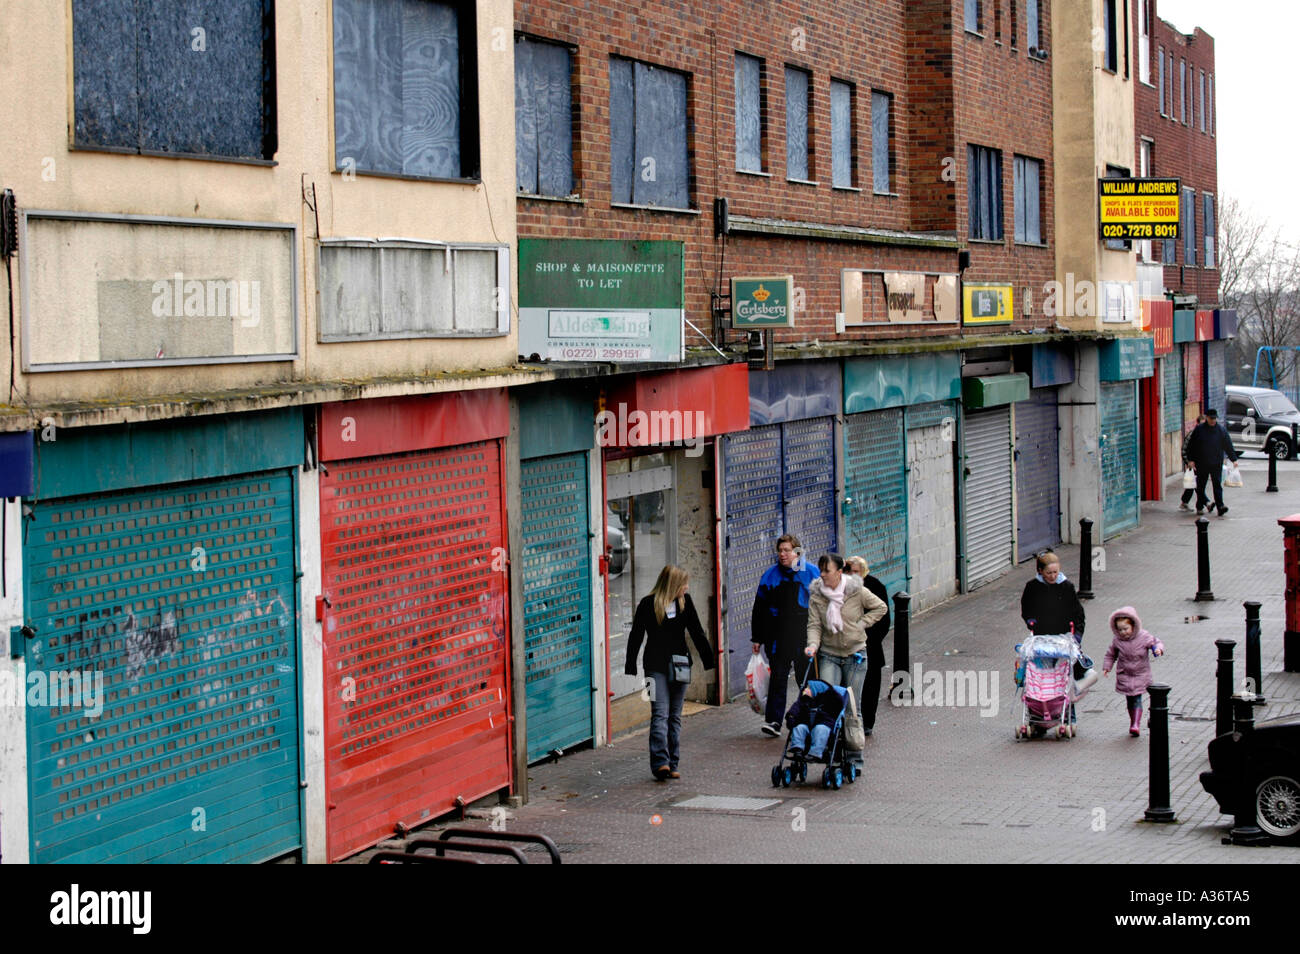 urban decay uk Boarded up shuttered shops and flats Symes Avenue Hartcliffe Bristol in urgent need of redevelopment England UK - Stock Image